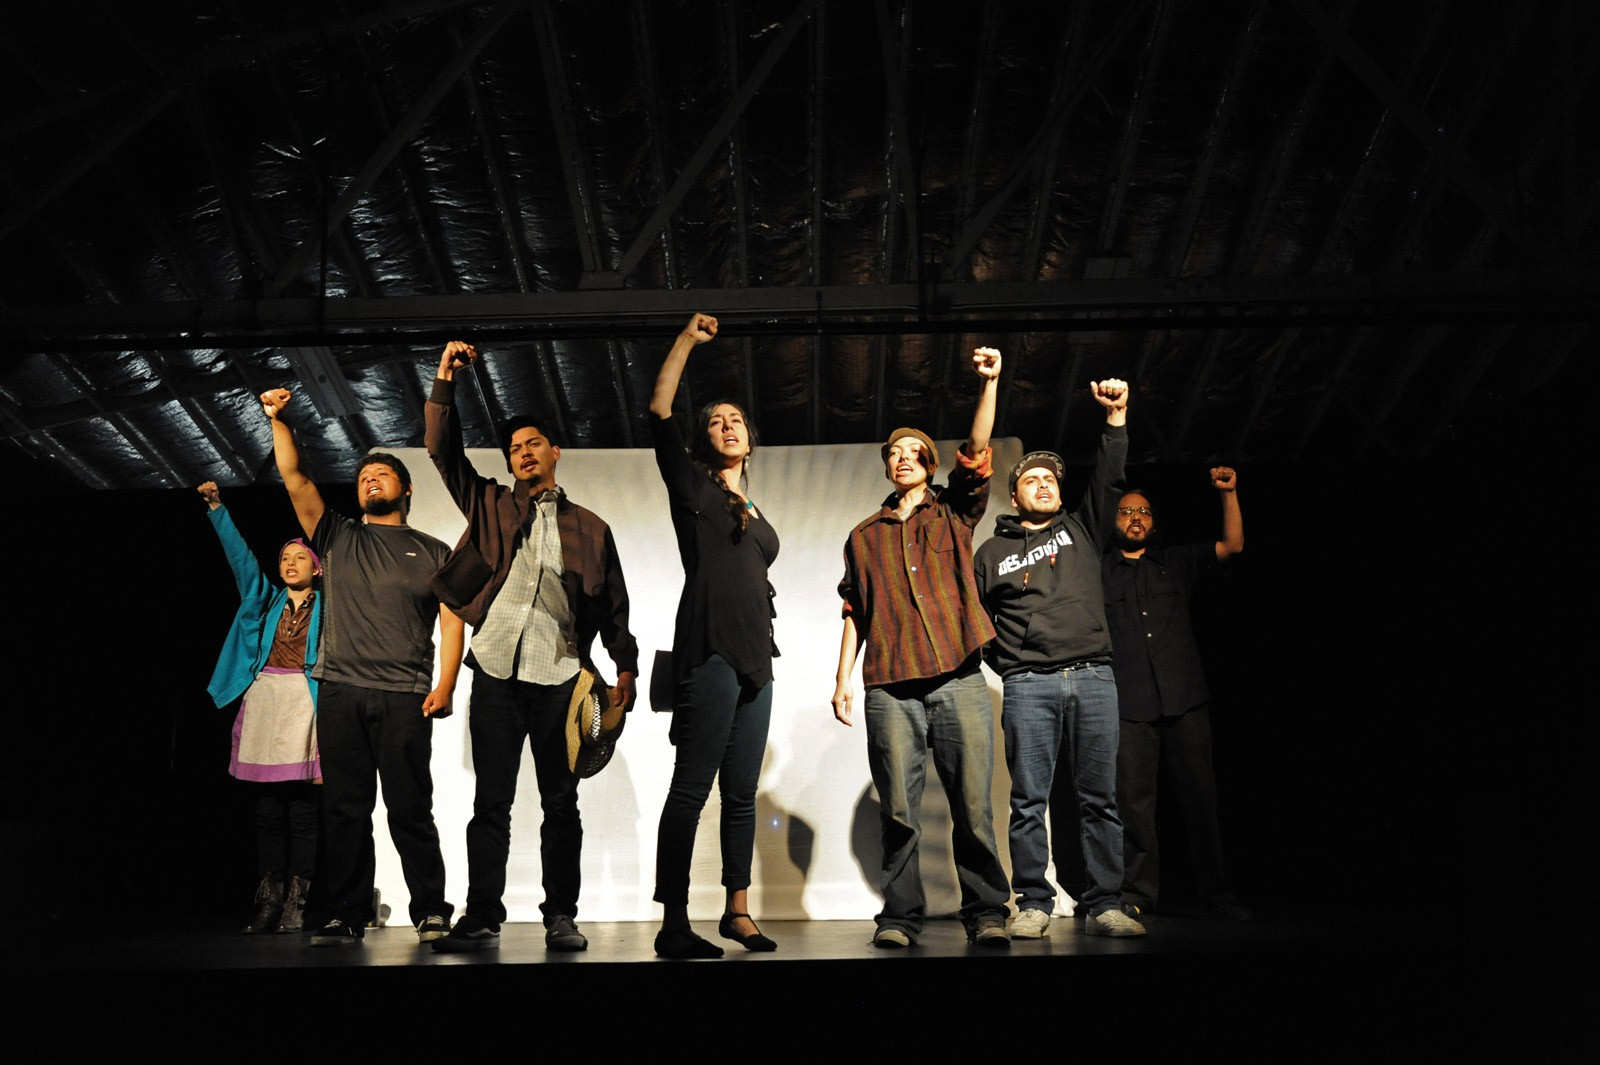 A group of students/actors from Artist ink on a stage performing.